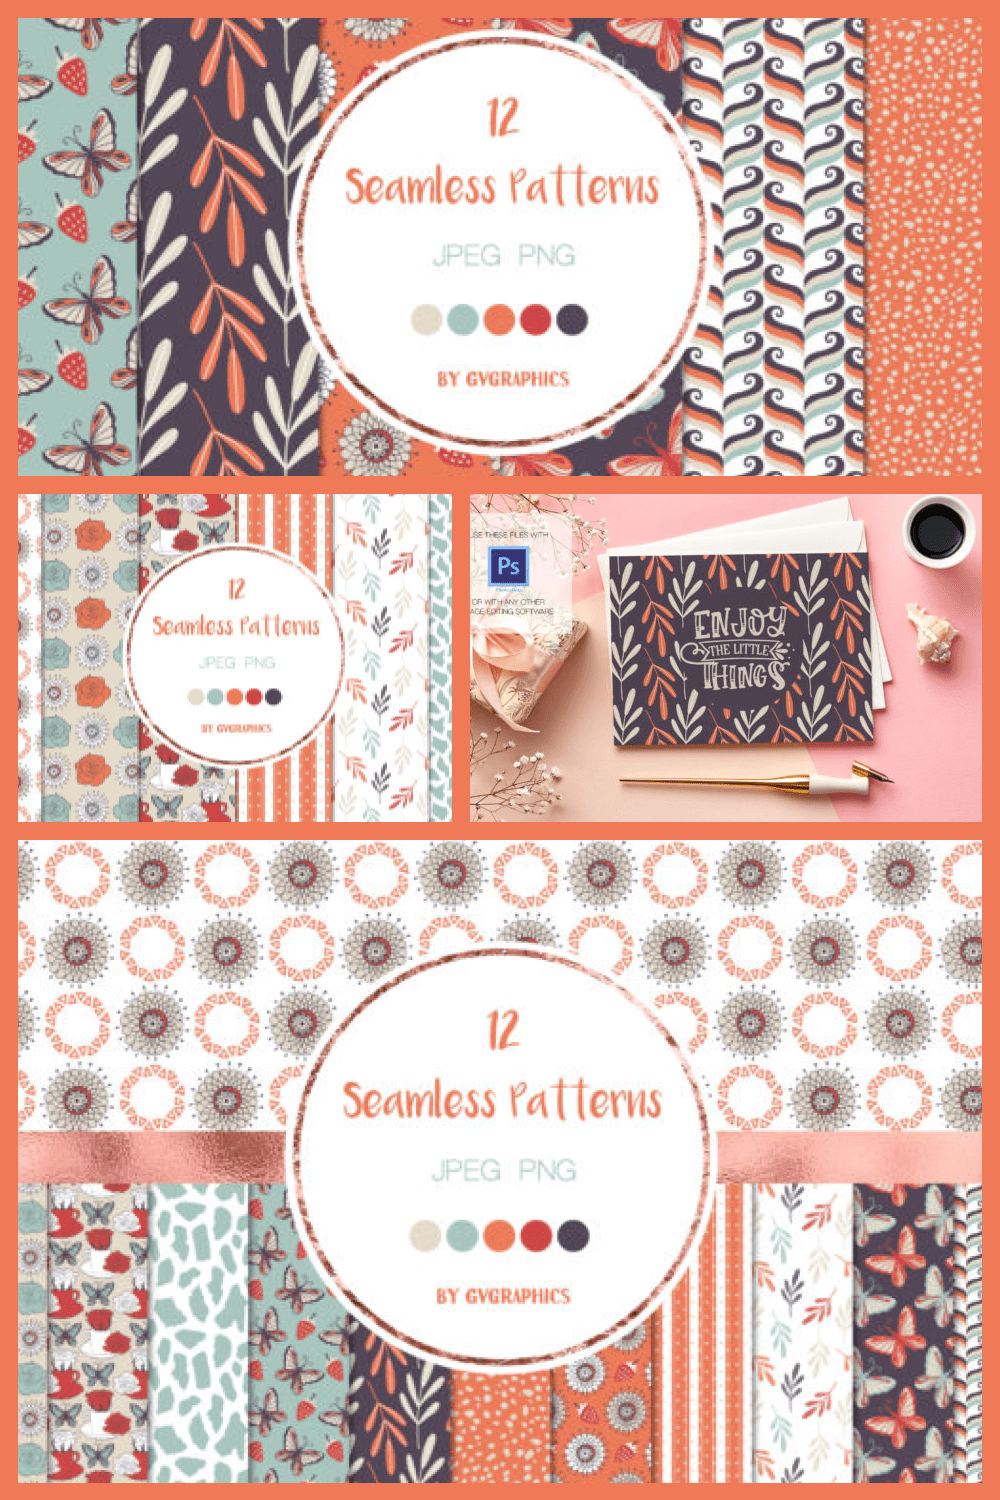 Butterflies, Roses and Strawberries Seamless Patterns - MasterBundles - Pinterest Collage Image.